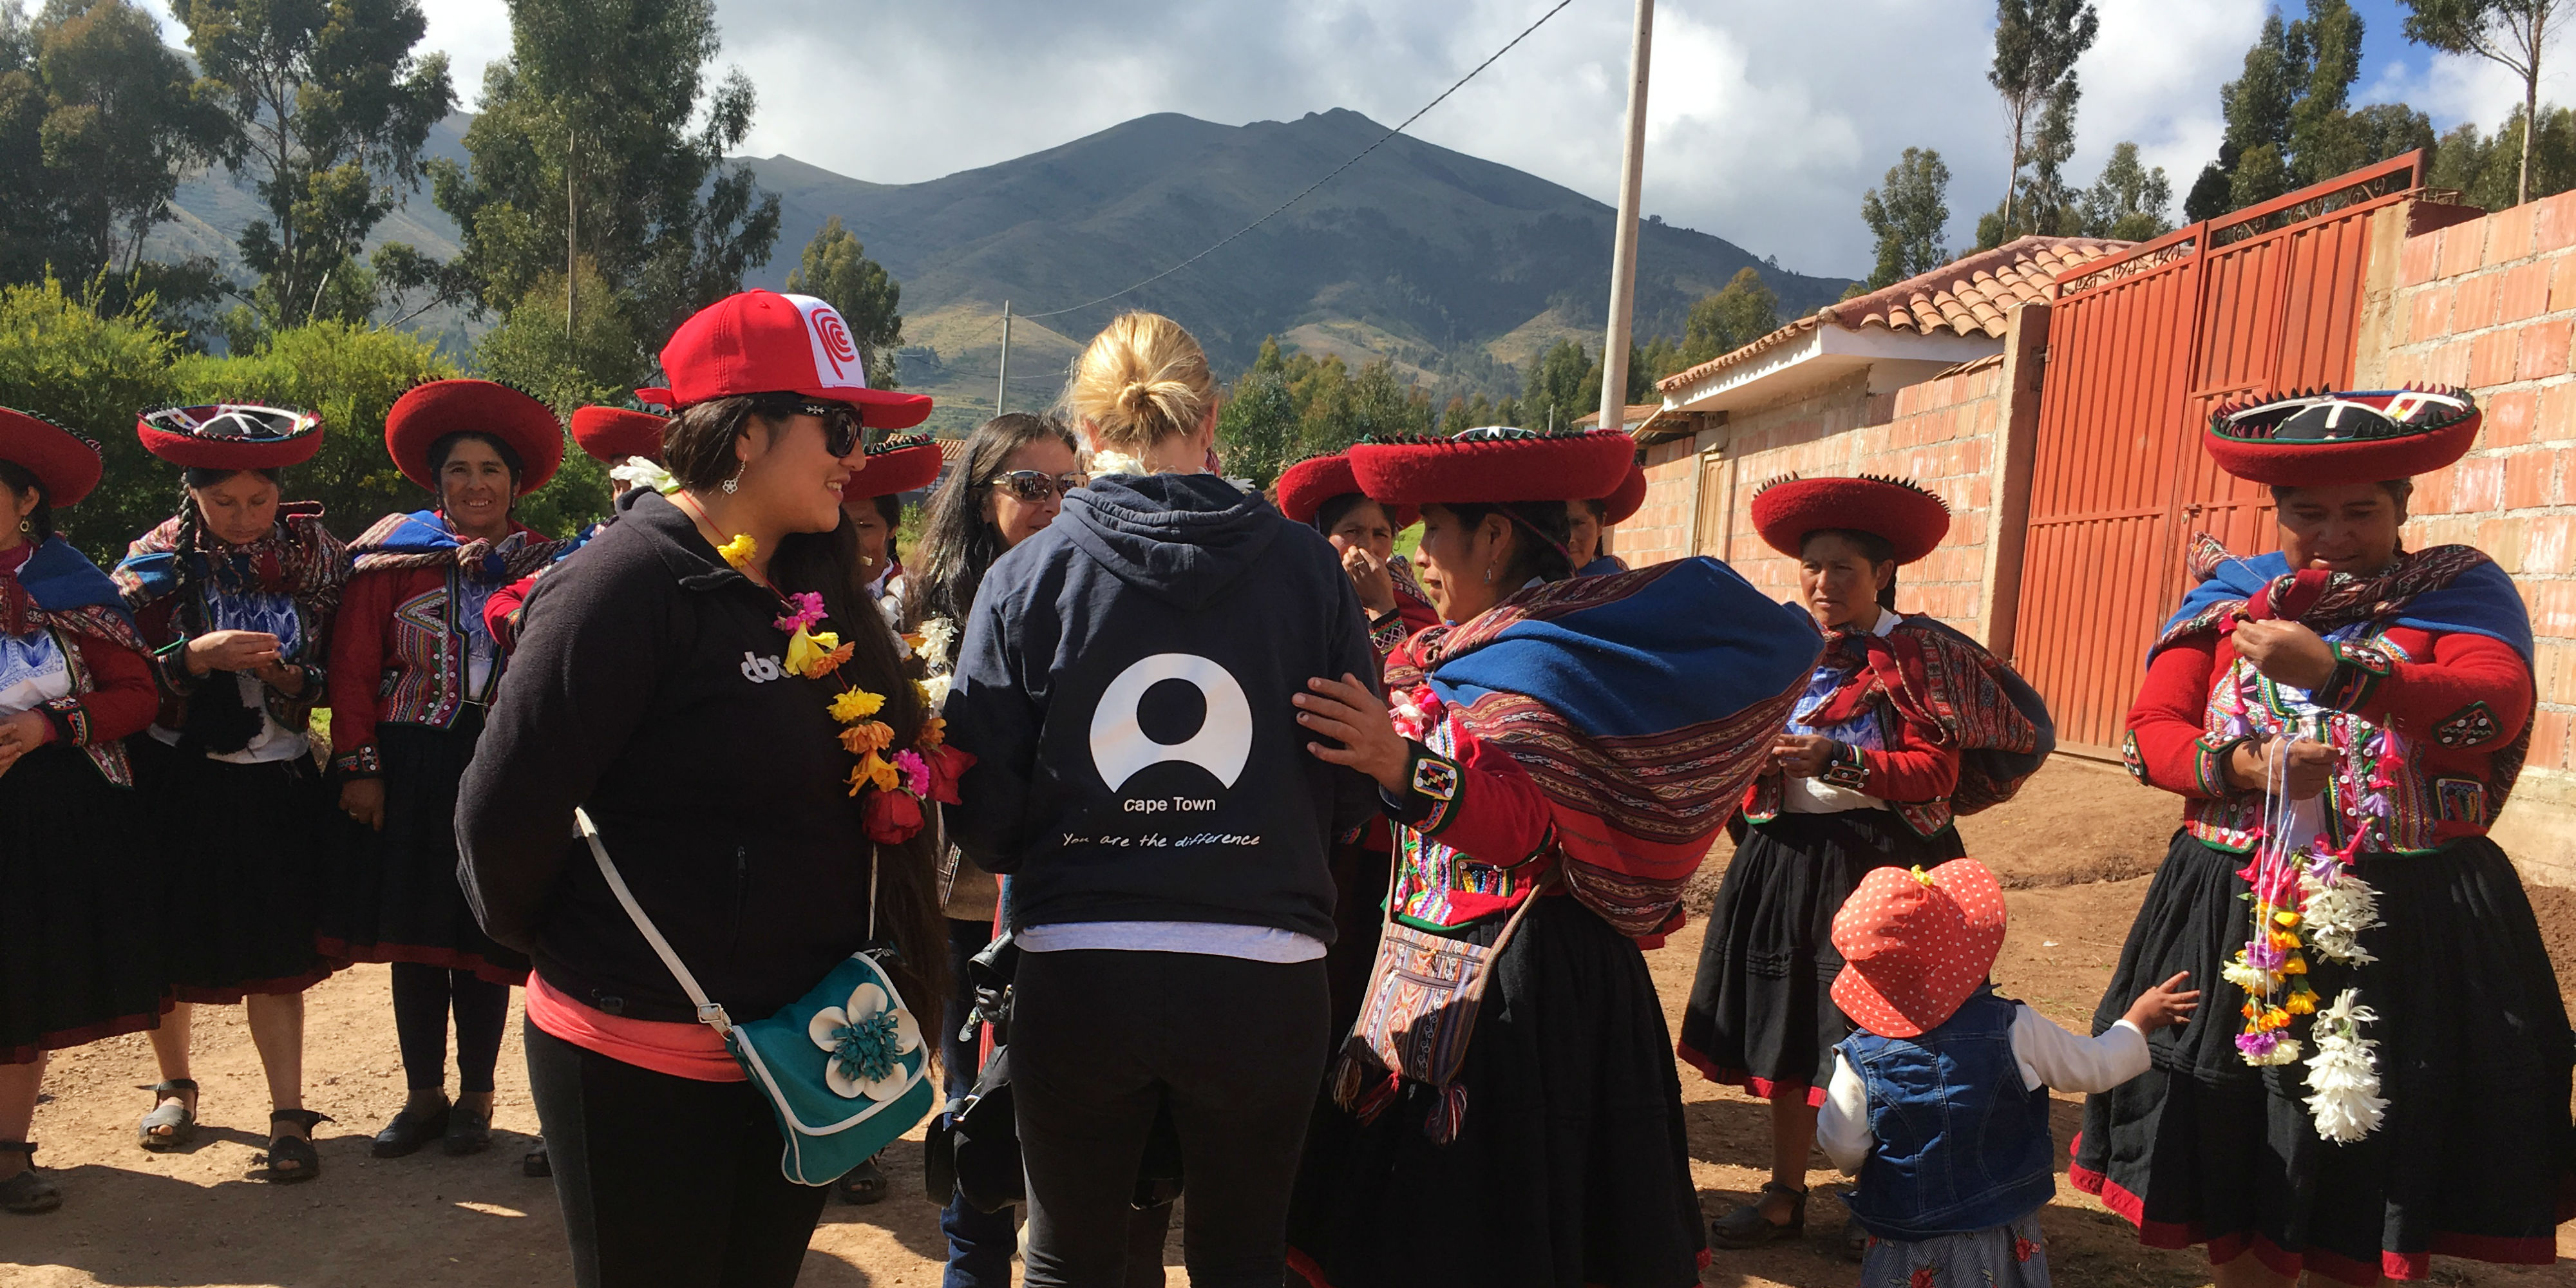 GVI staff engage with quechua people while working on locally-led sustainable development projects in Peru.